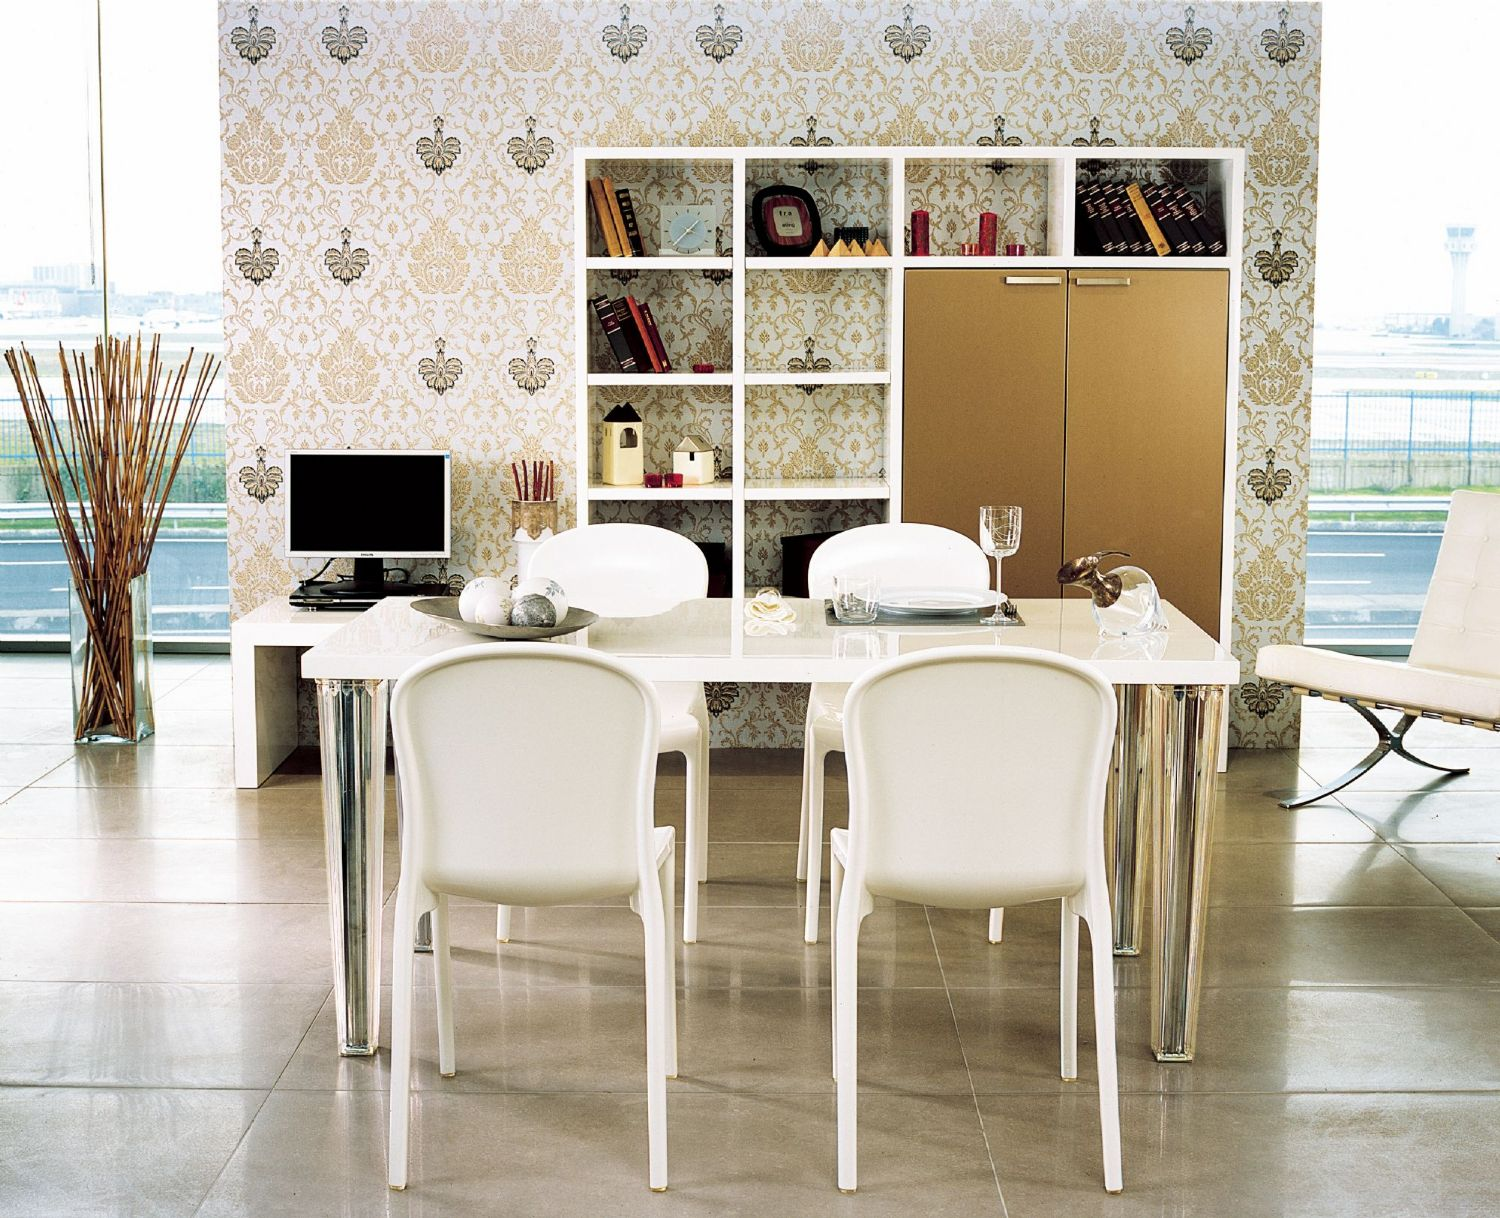 Victoria Polycarbonate Modern Dining Chair White ISP033-GWHI - 8